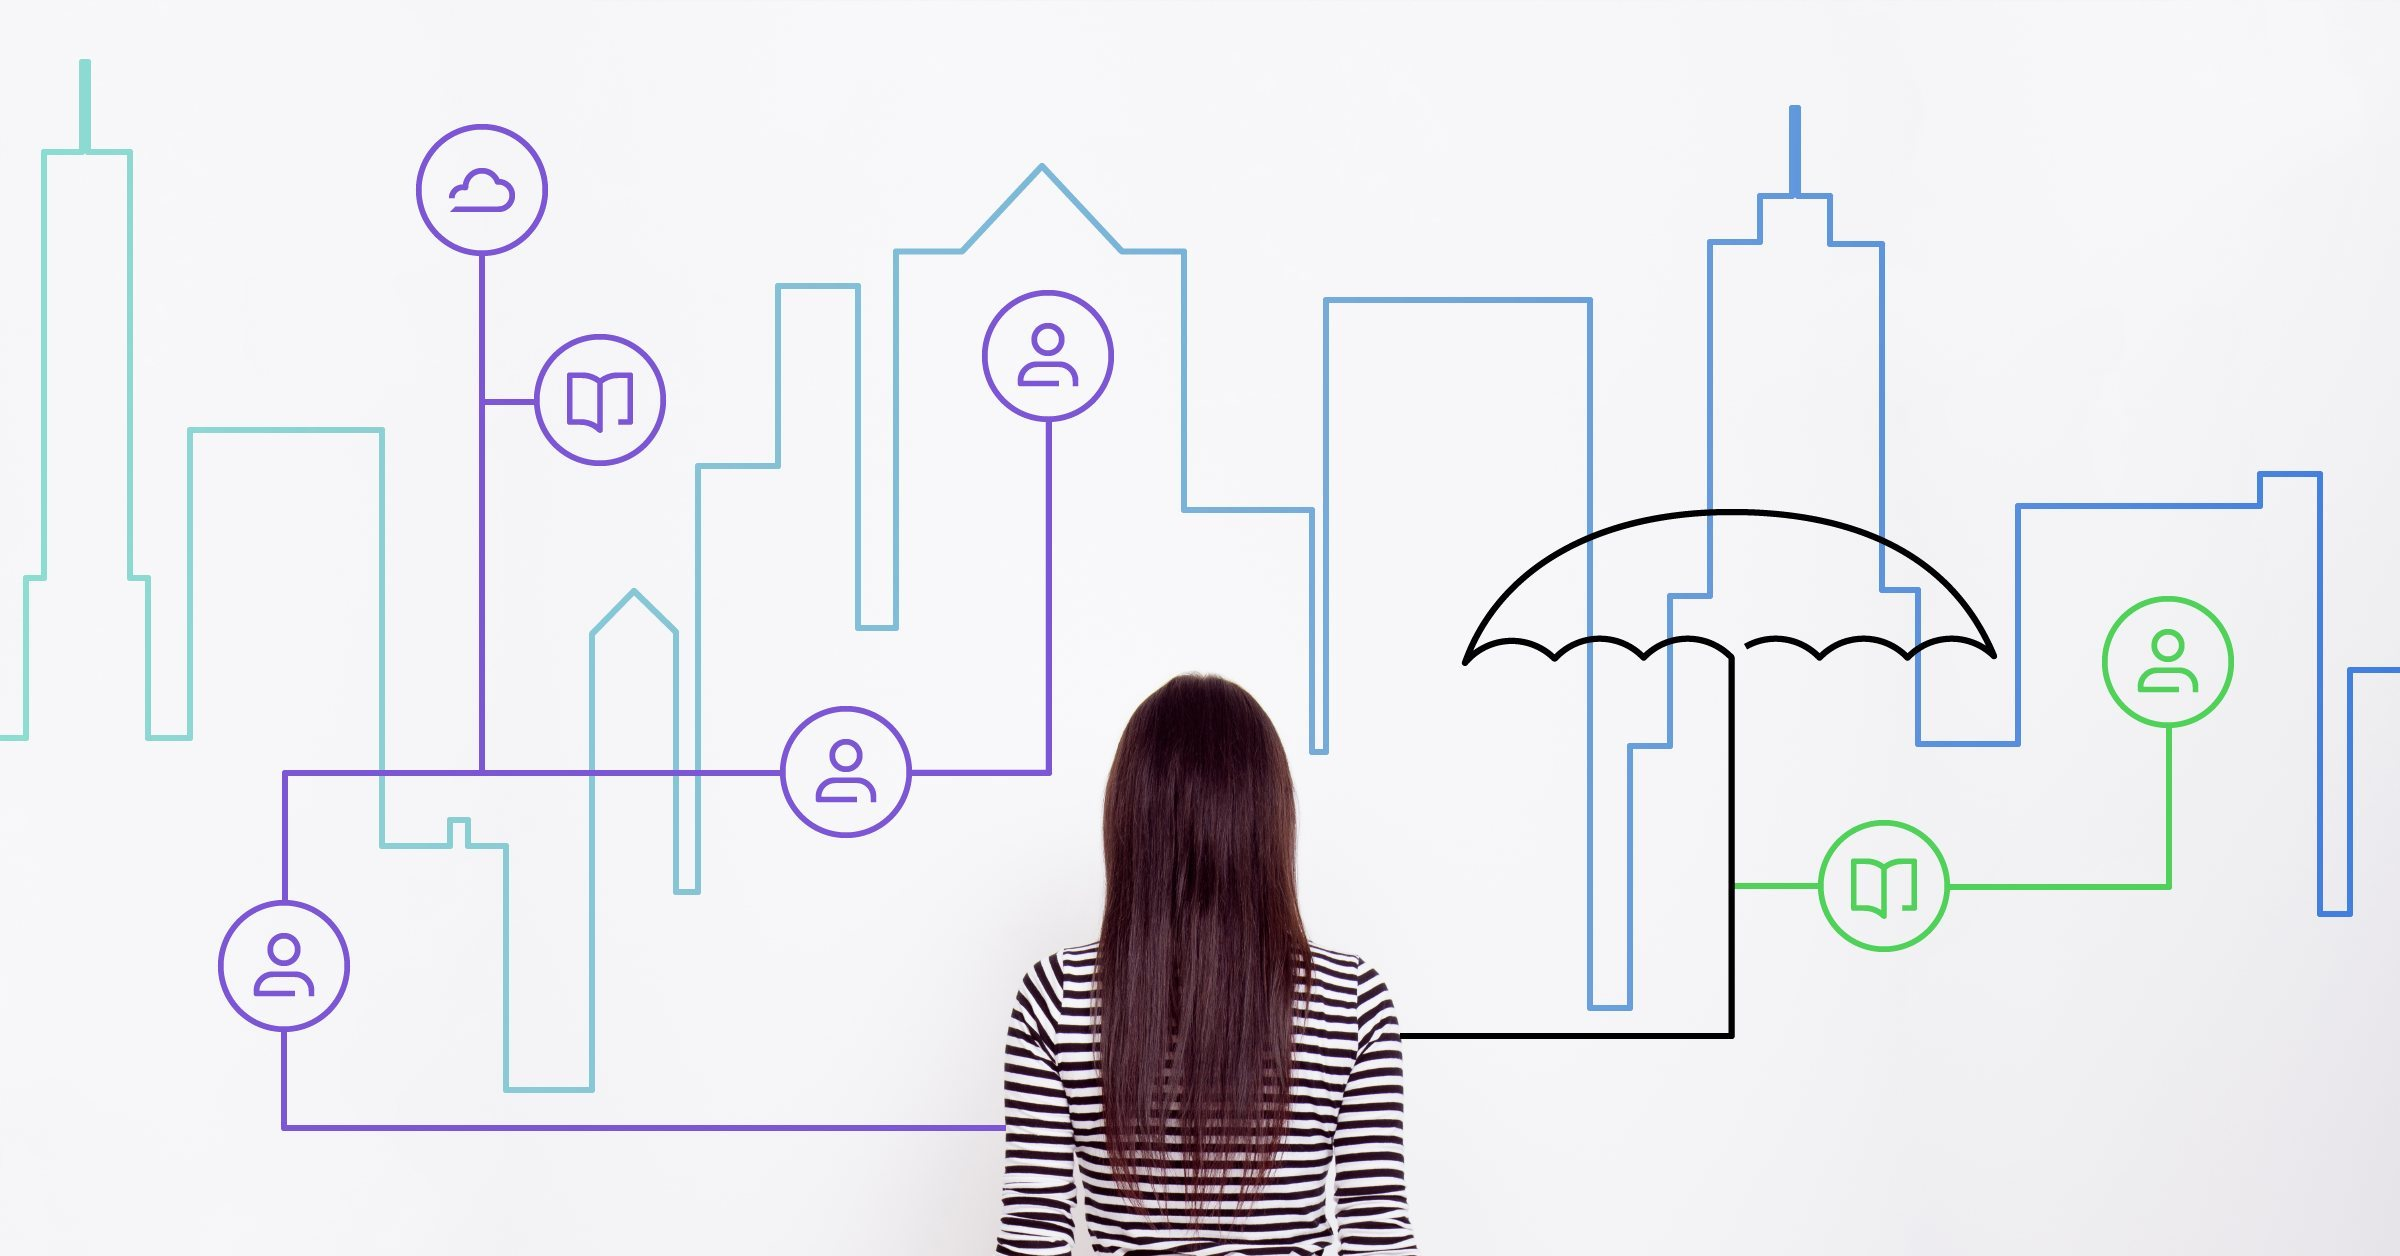 Advantages of adopting ai in insurance